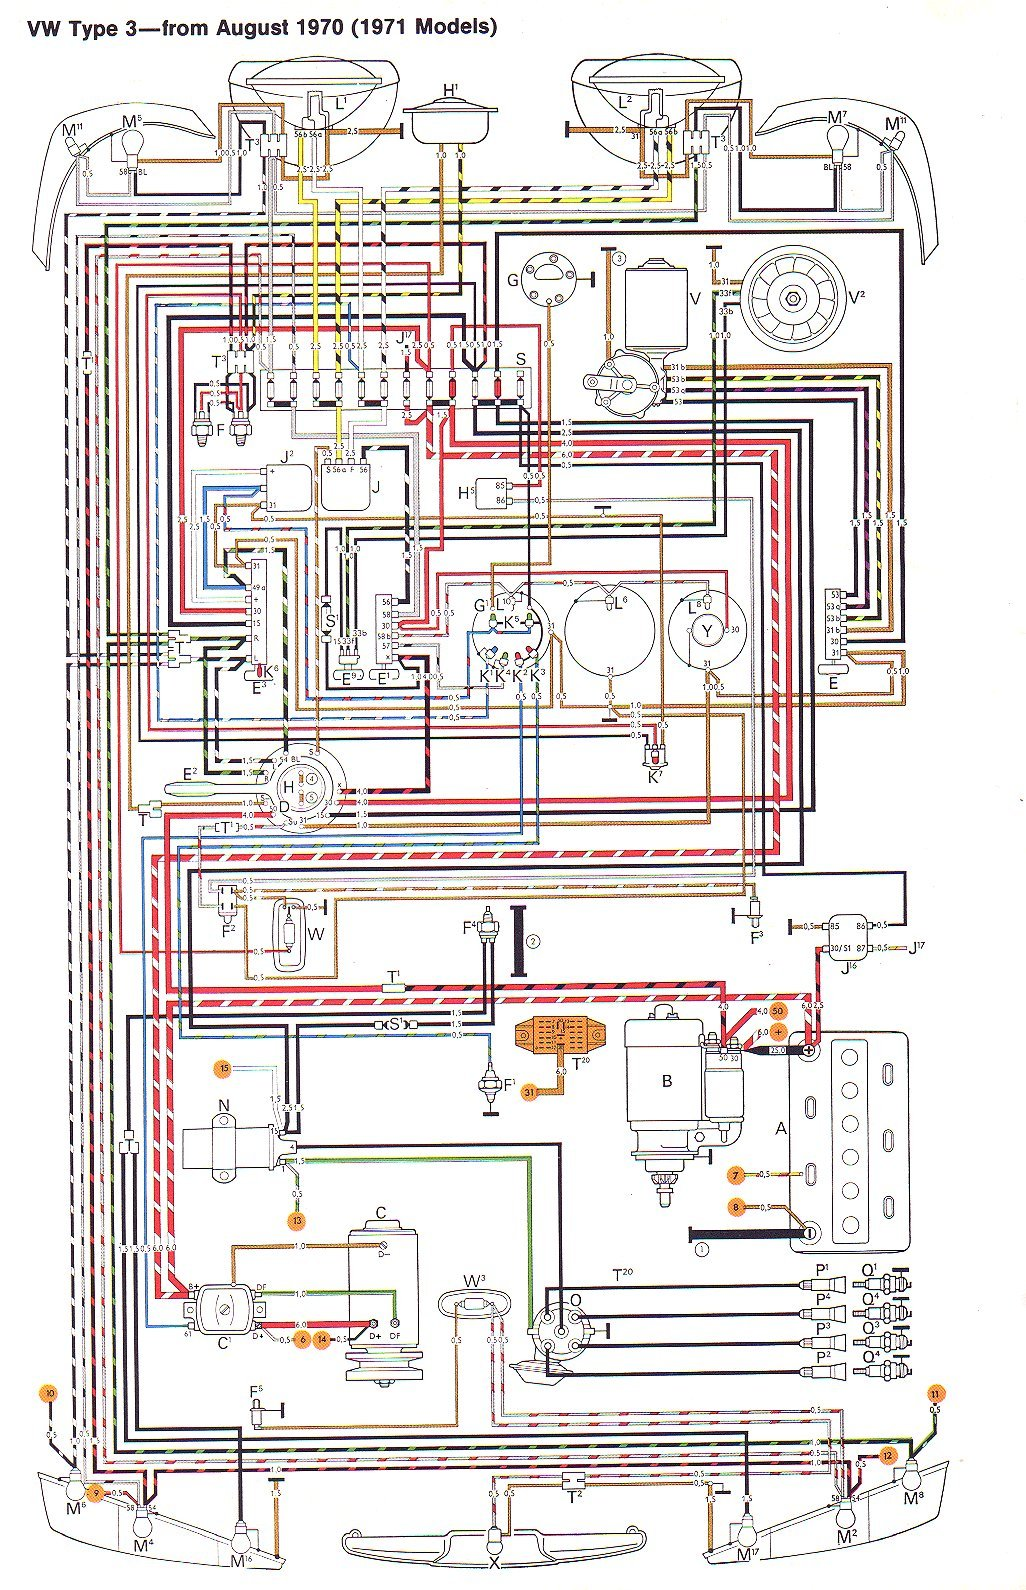 vw type 3 wiring diagrams 1973 vw type 3 wiring diagram vw type 3 wiring diagram #4